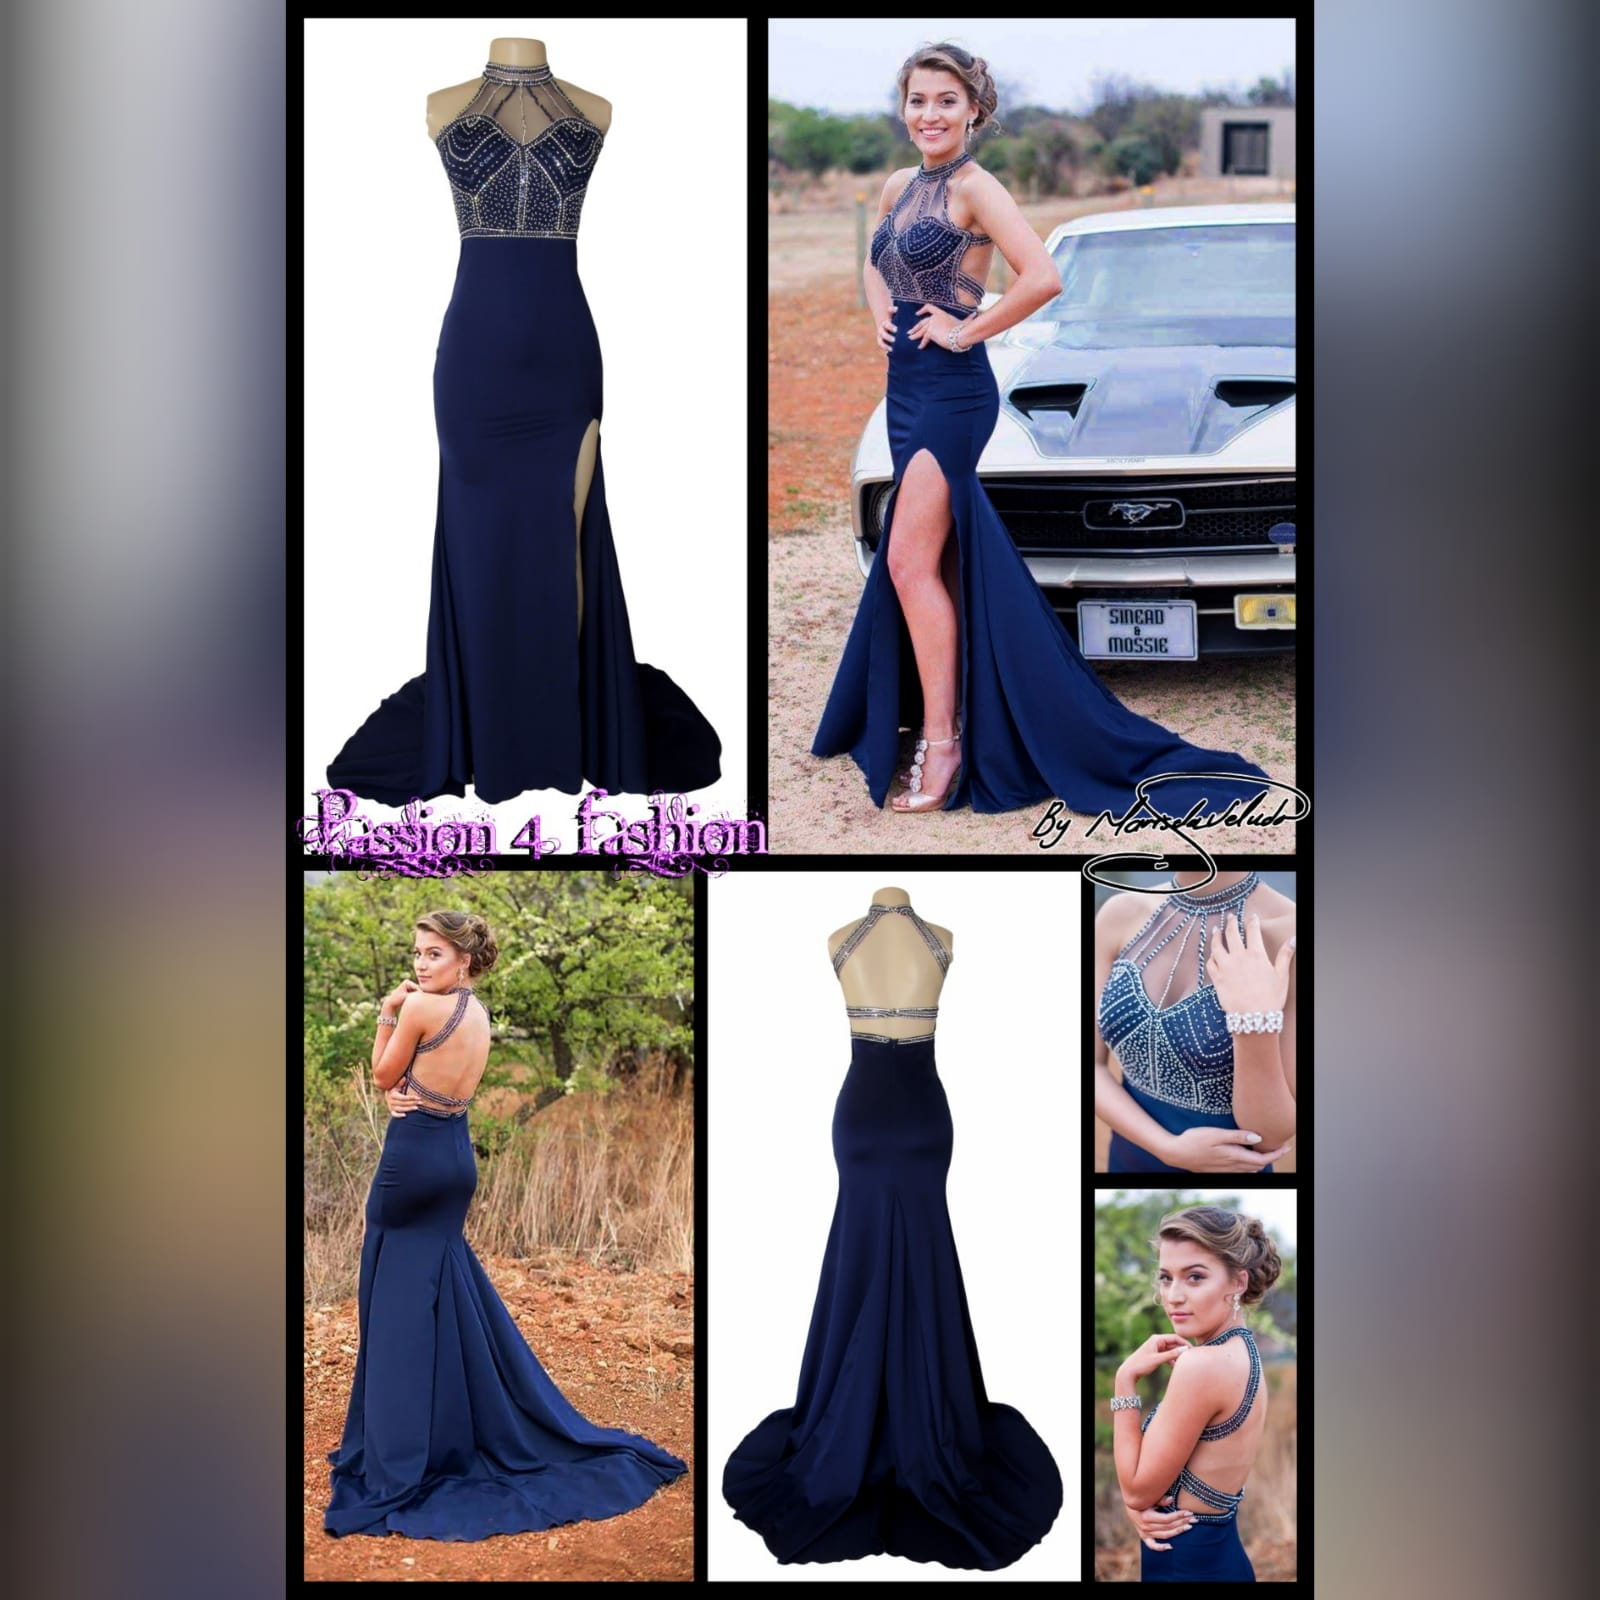 Navy blue silver beaded prom dress 5 navy blue silver beaded prom dress with an illusion neckline and a choker effect. Backless design detailed with beaded straps. Fitted bottom with a slit and a train.